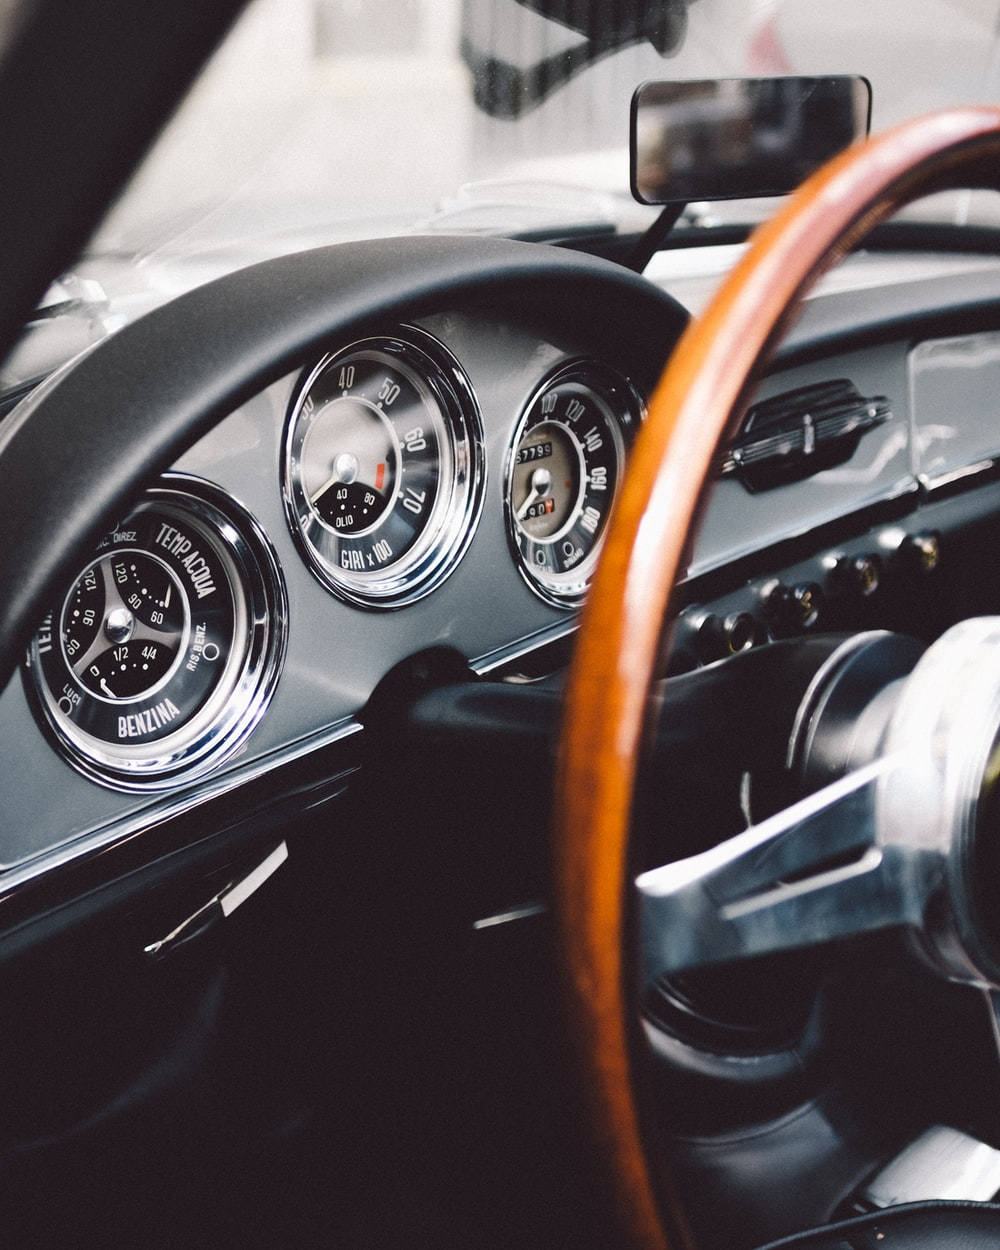 focus photography of vehicle steering wheel